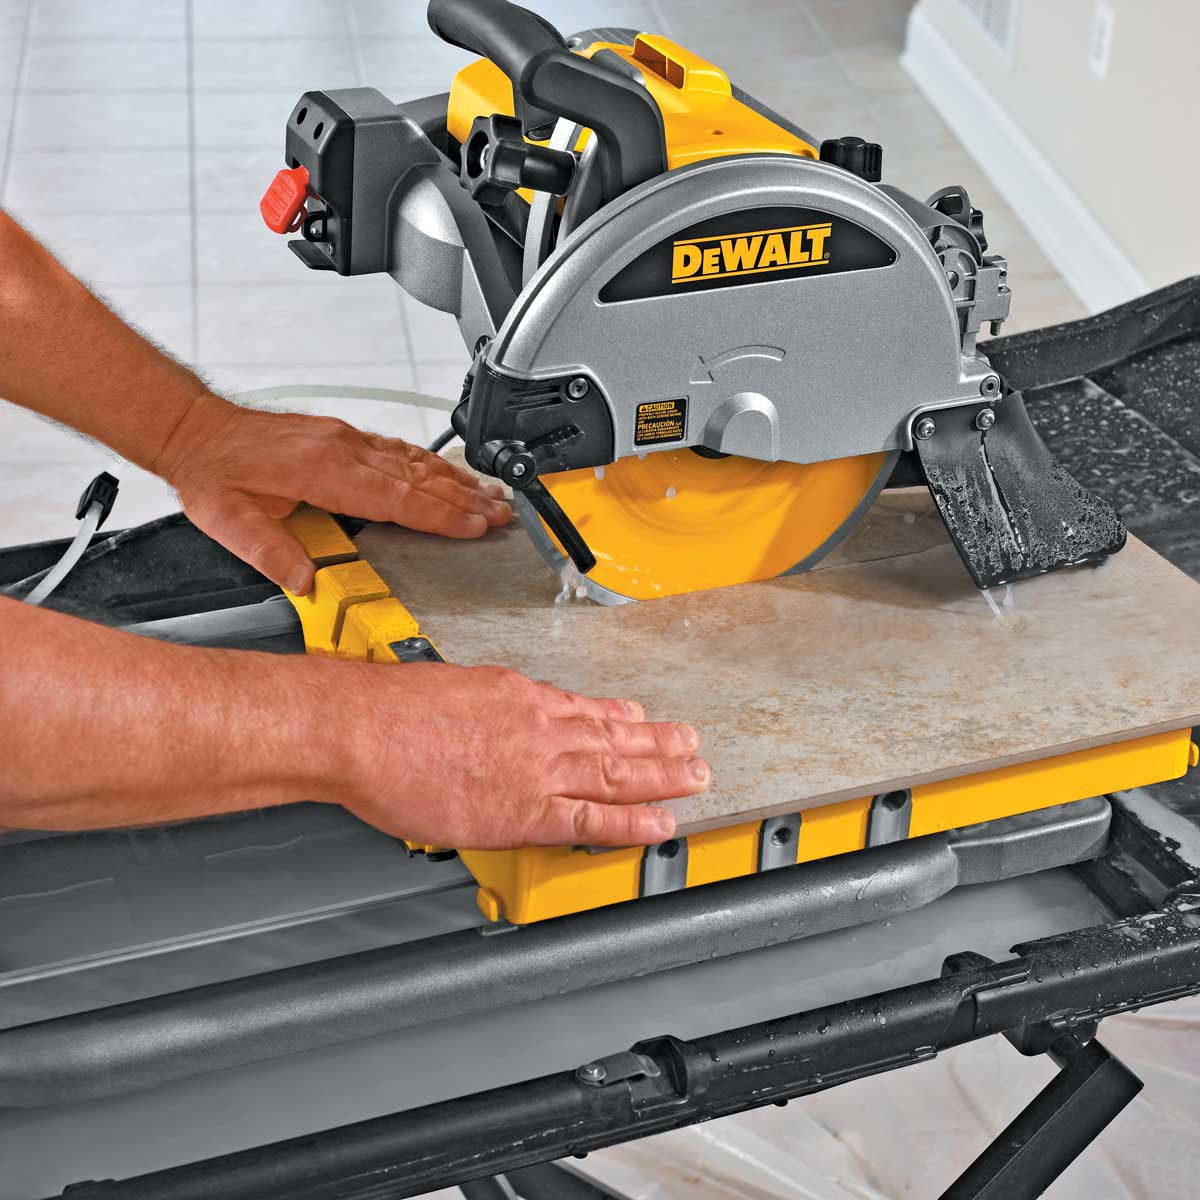 Dewalt D24000 wet cutting tile